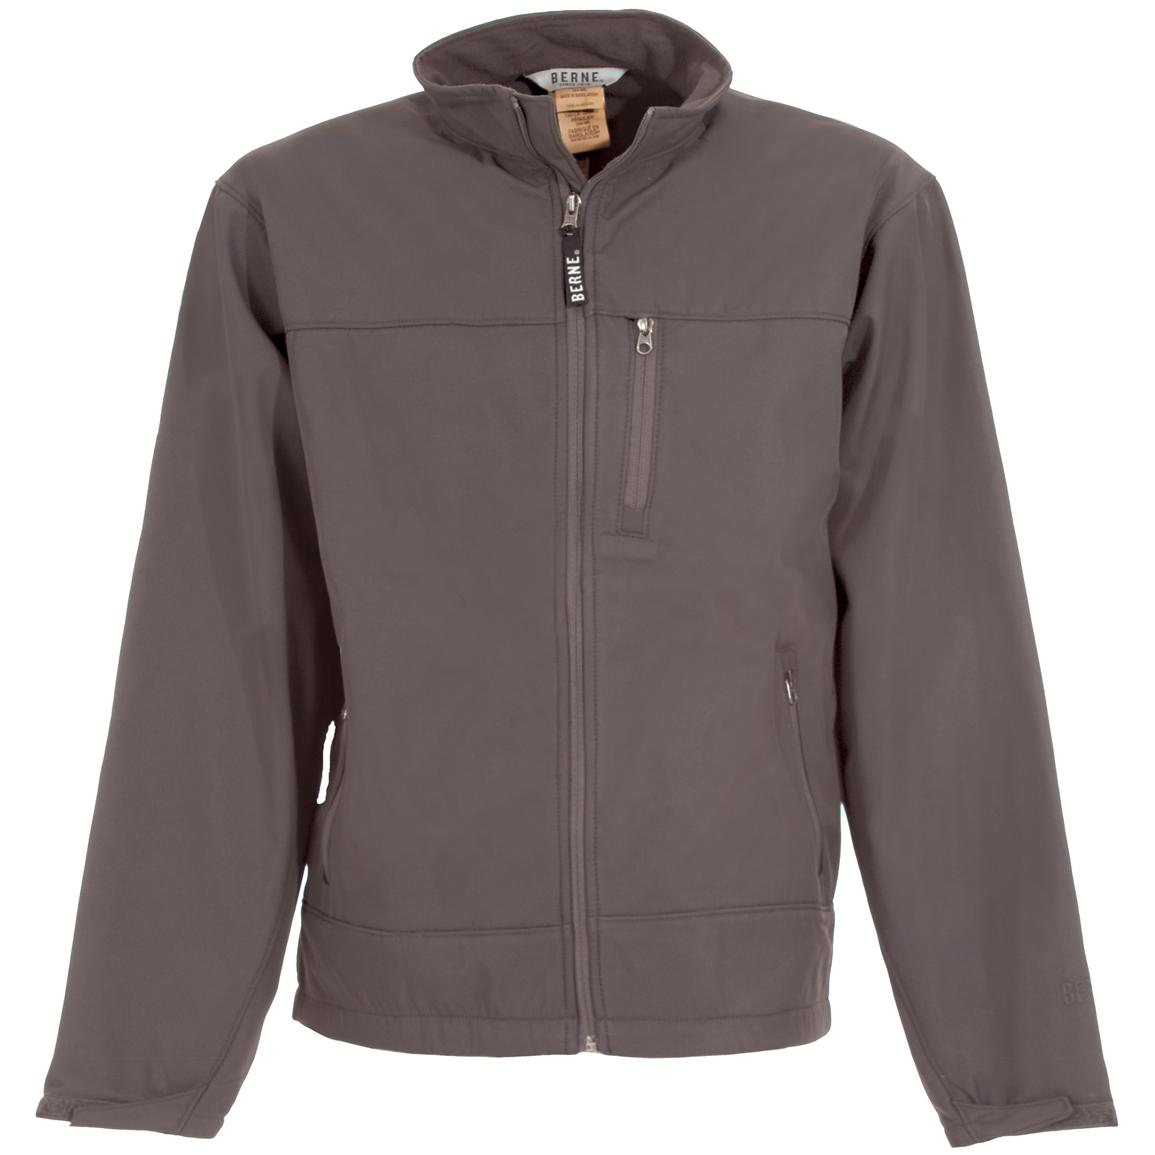 Men's Berne® Soft Shell Jacket, Grey